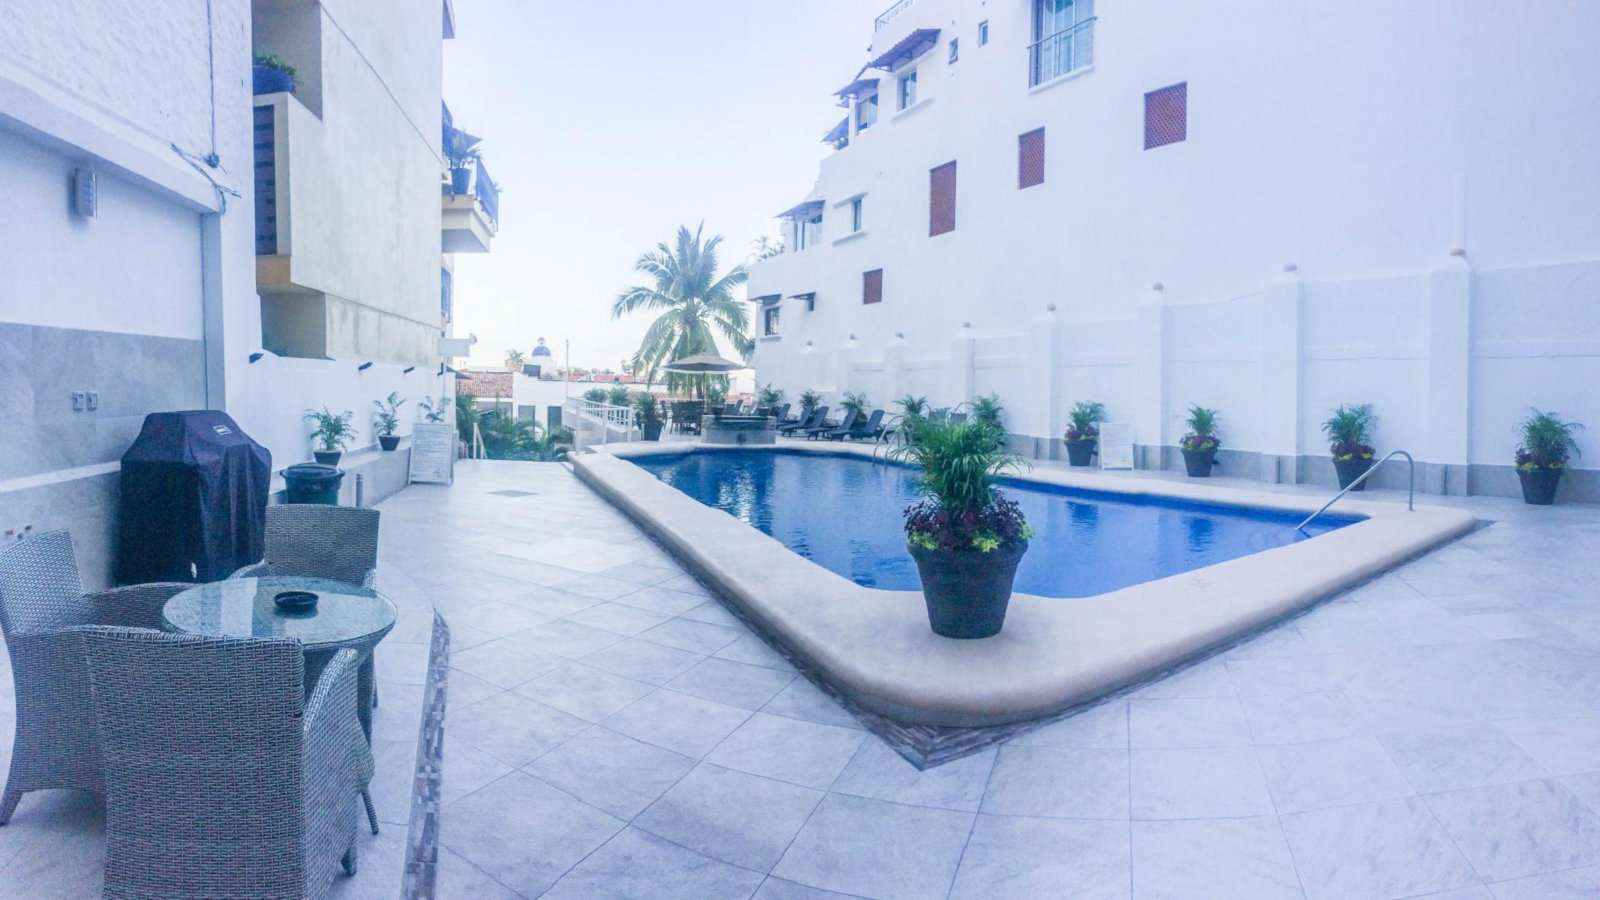 Boana Torre Malibu is a gay condo/hotel complex in Puerto Vallarta with the biggest pool in the city!